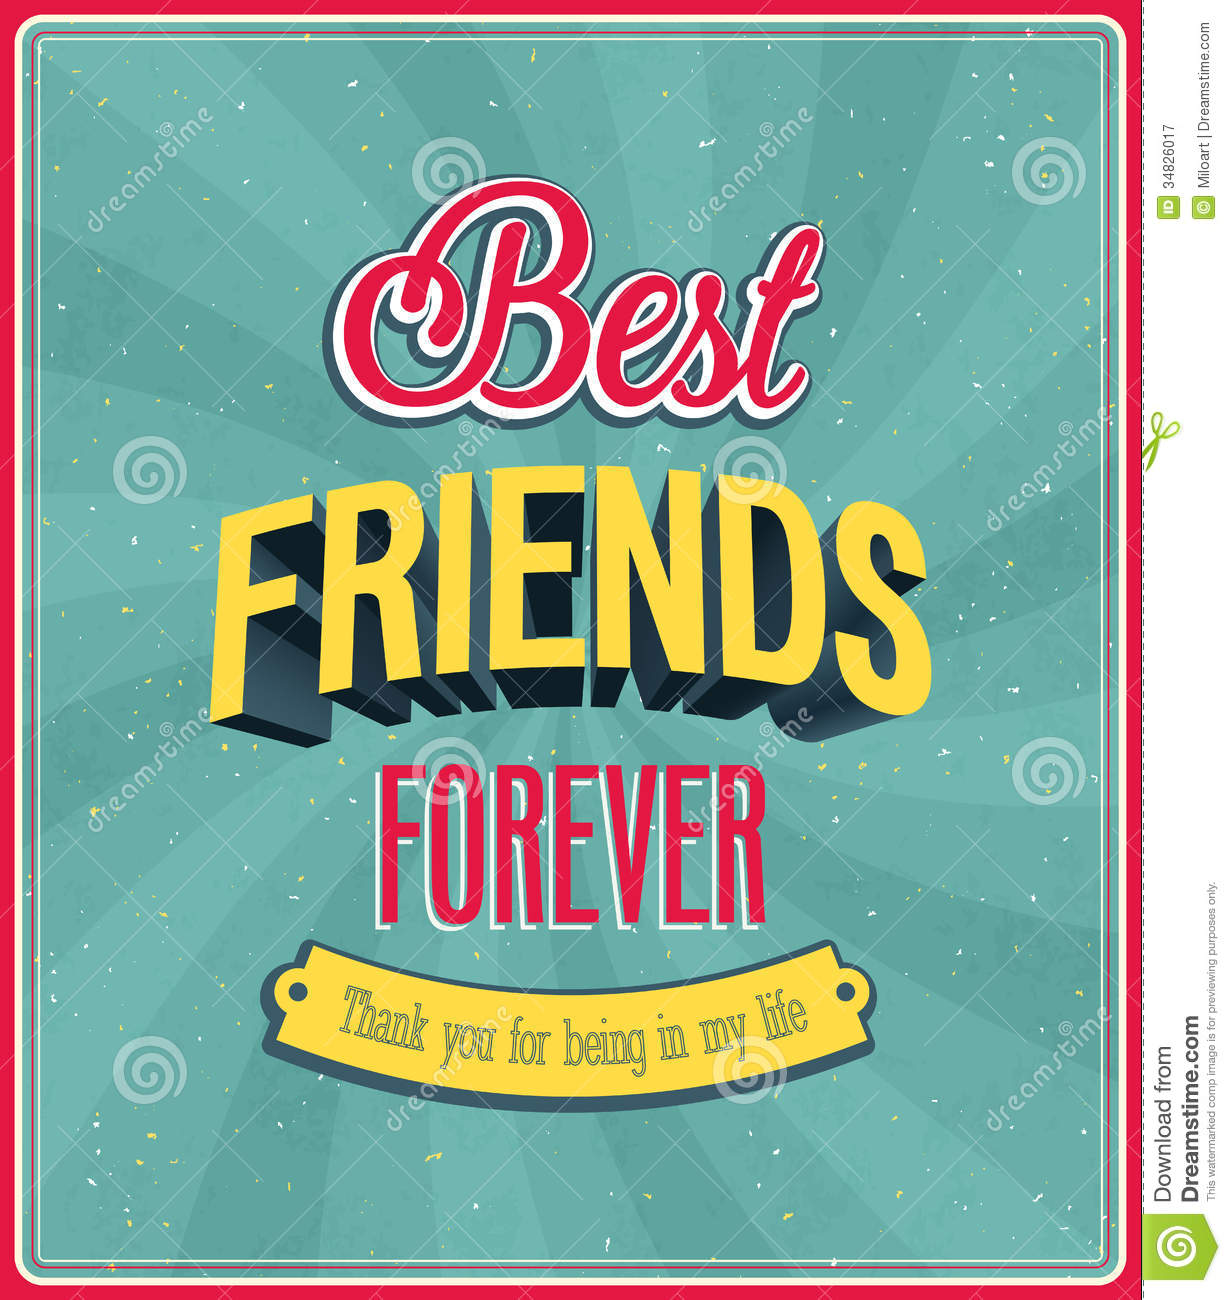 Best Friends Forever Typographic Design